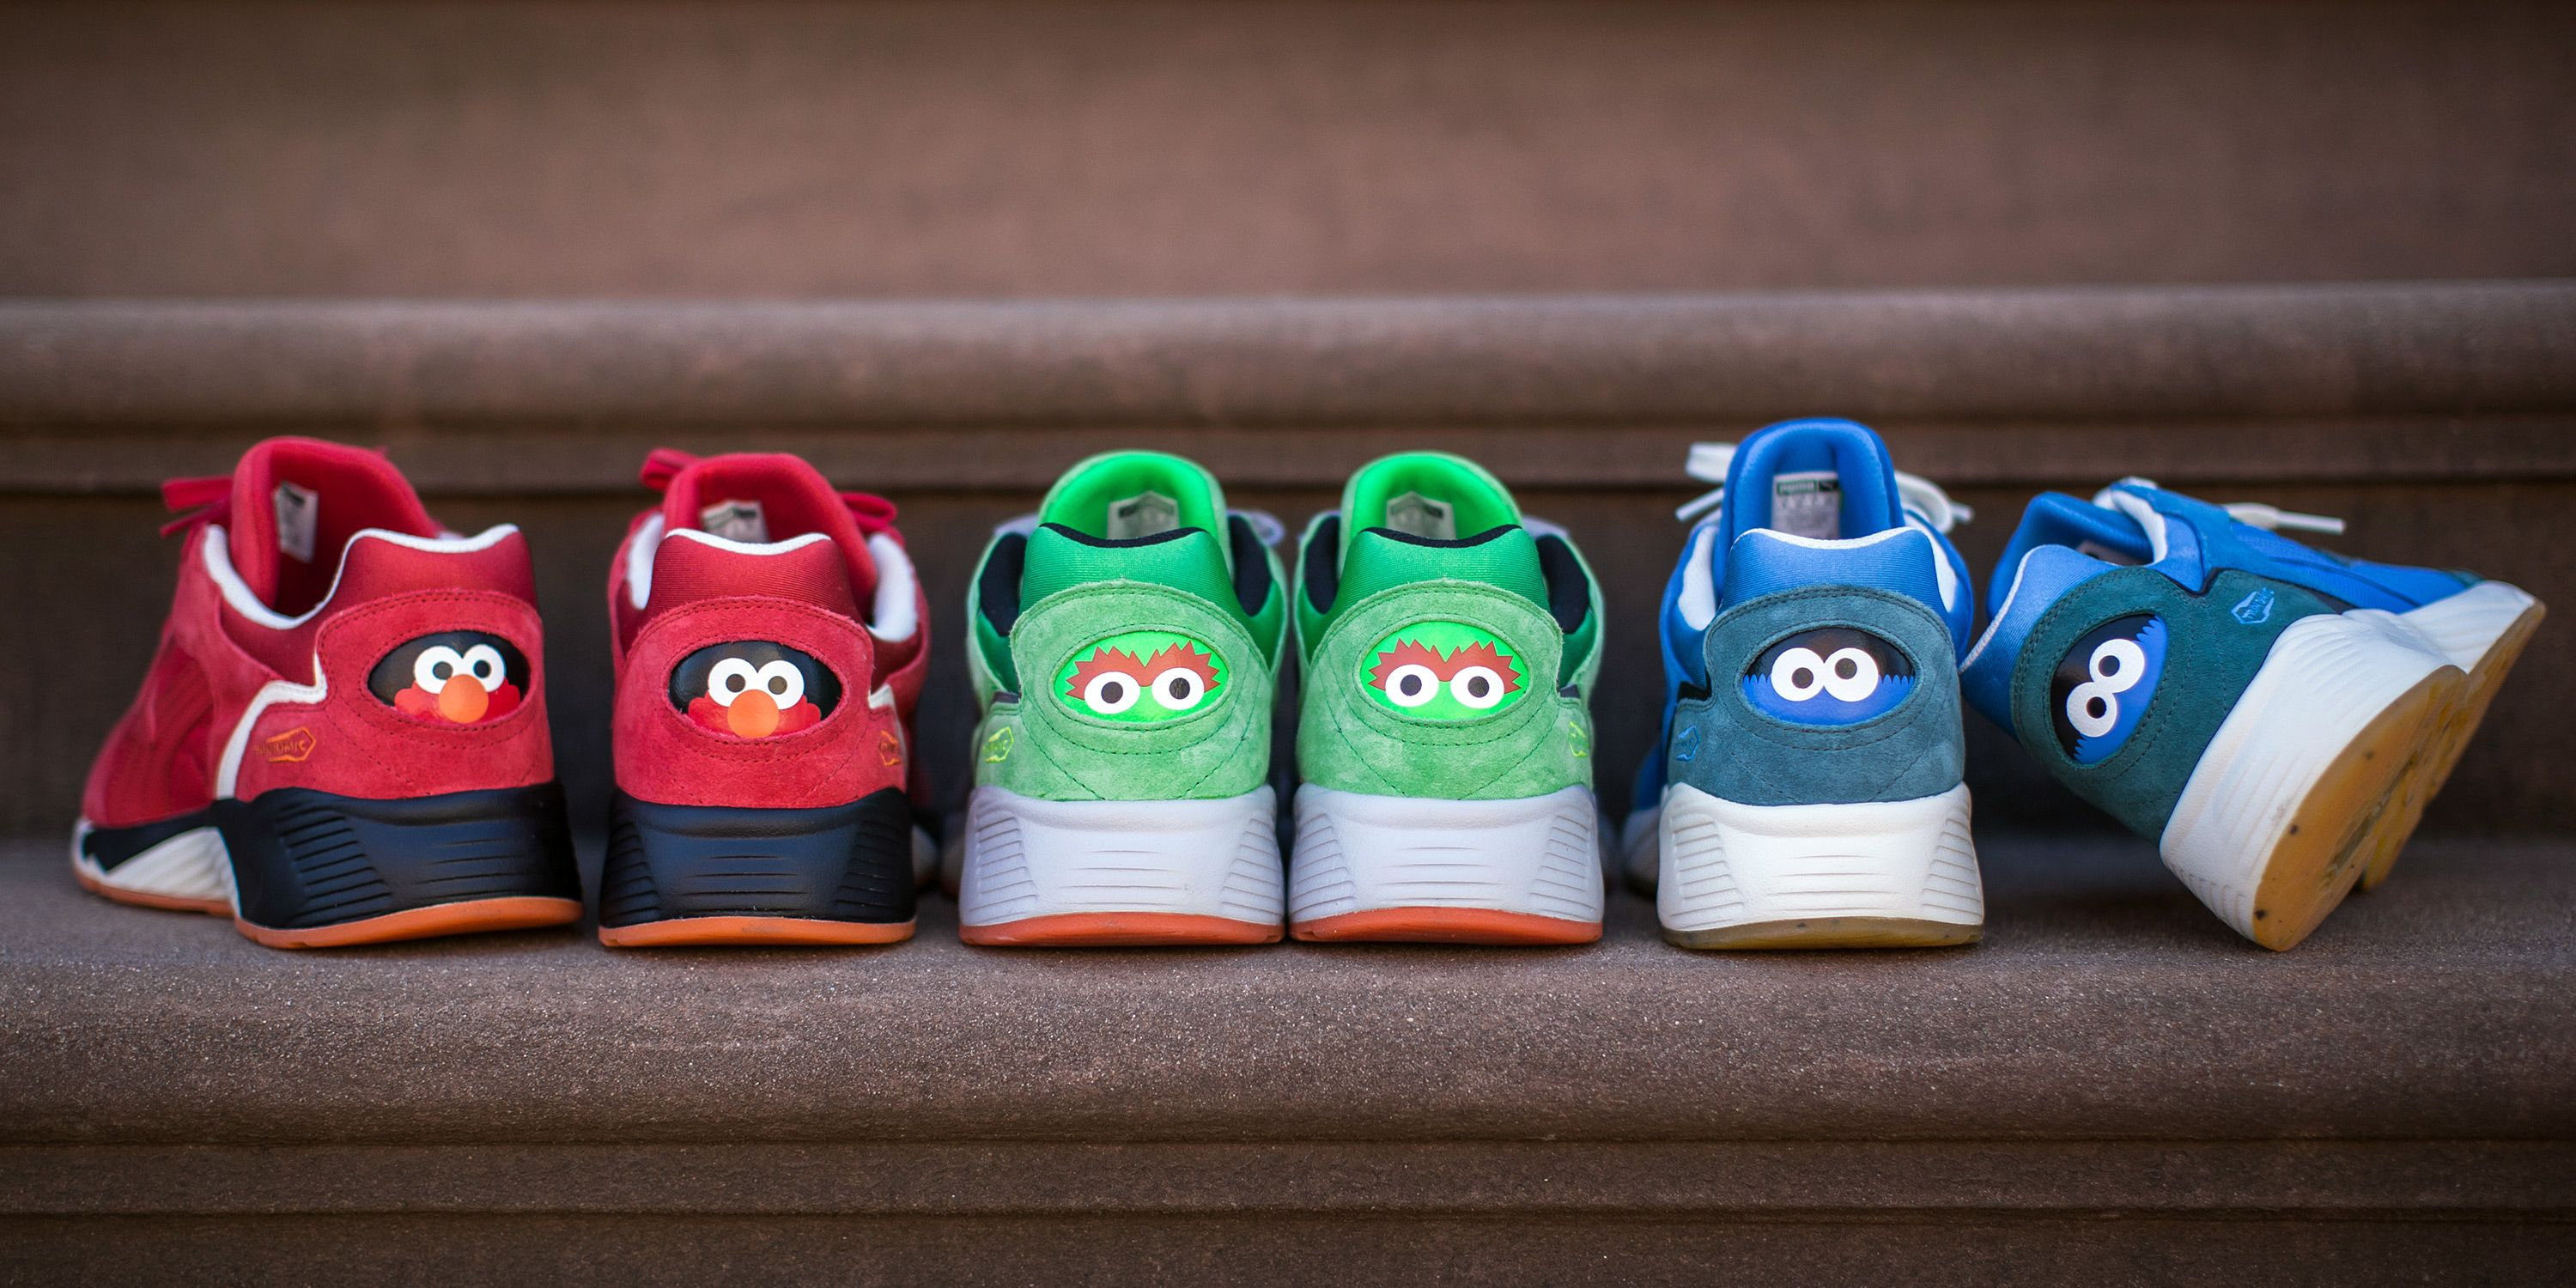 d129951ad68 Puma x Sesame Street Sneaker Collaboration - Your Inner Child Is ...